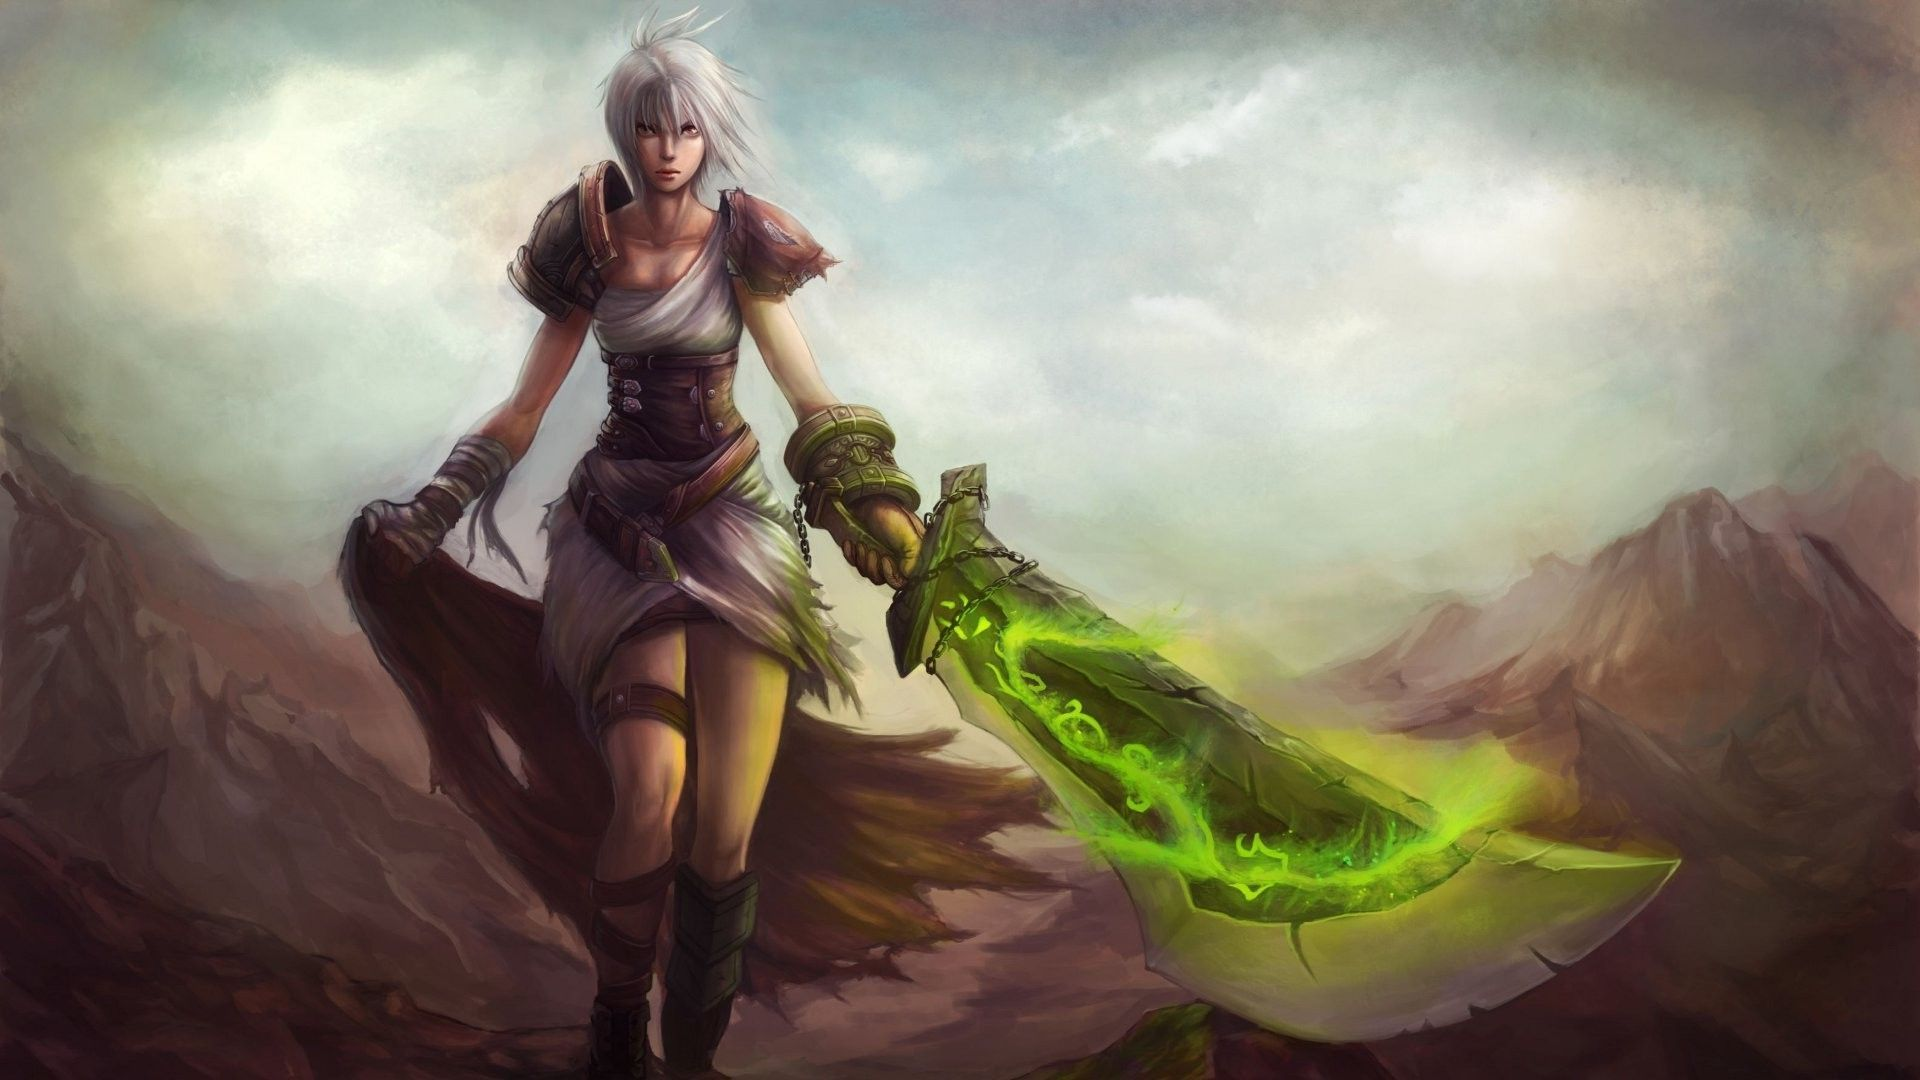 League Of Legends Wallpaper 1366x768: Riven League Of Legends Wallpaper 1920x1080px